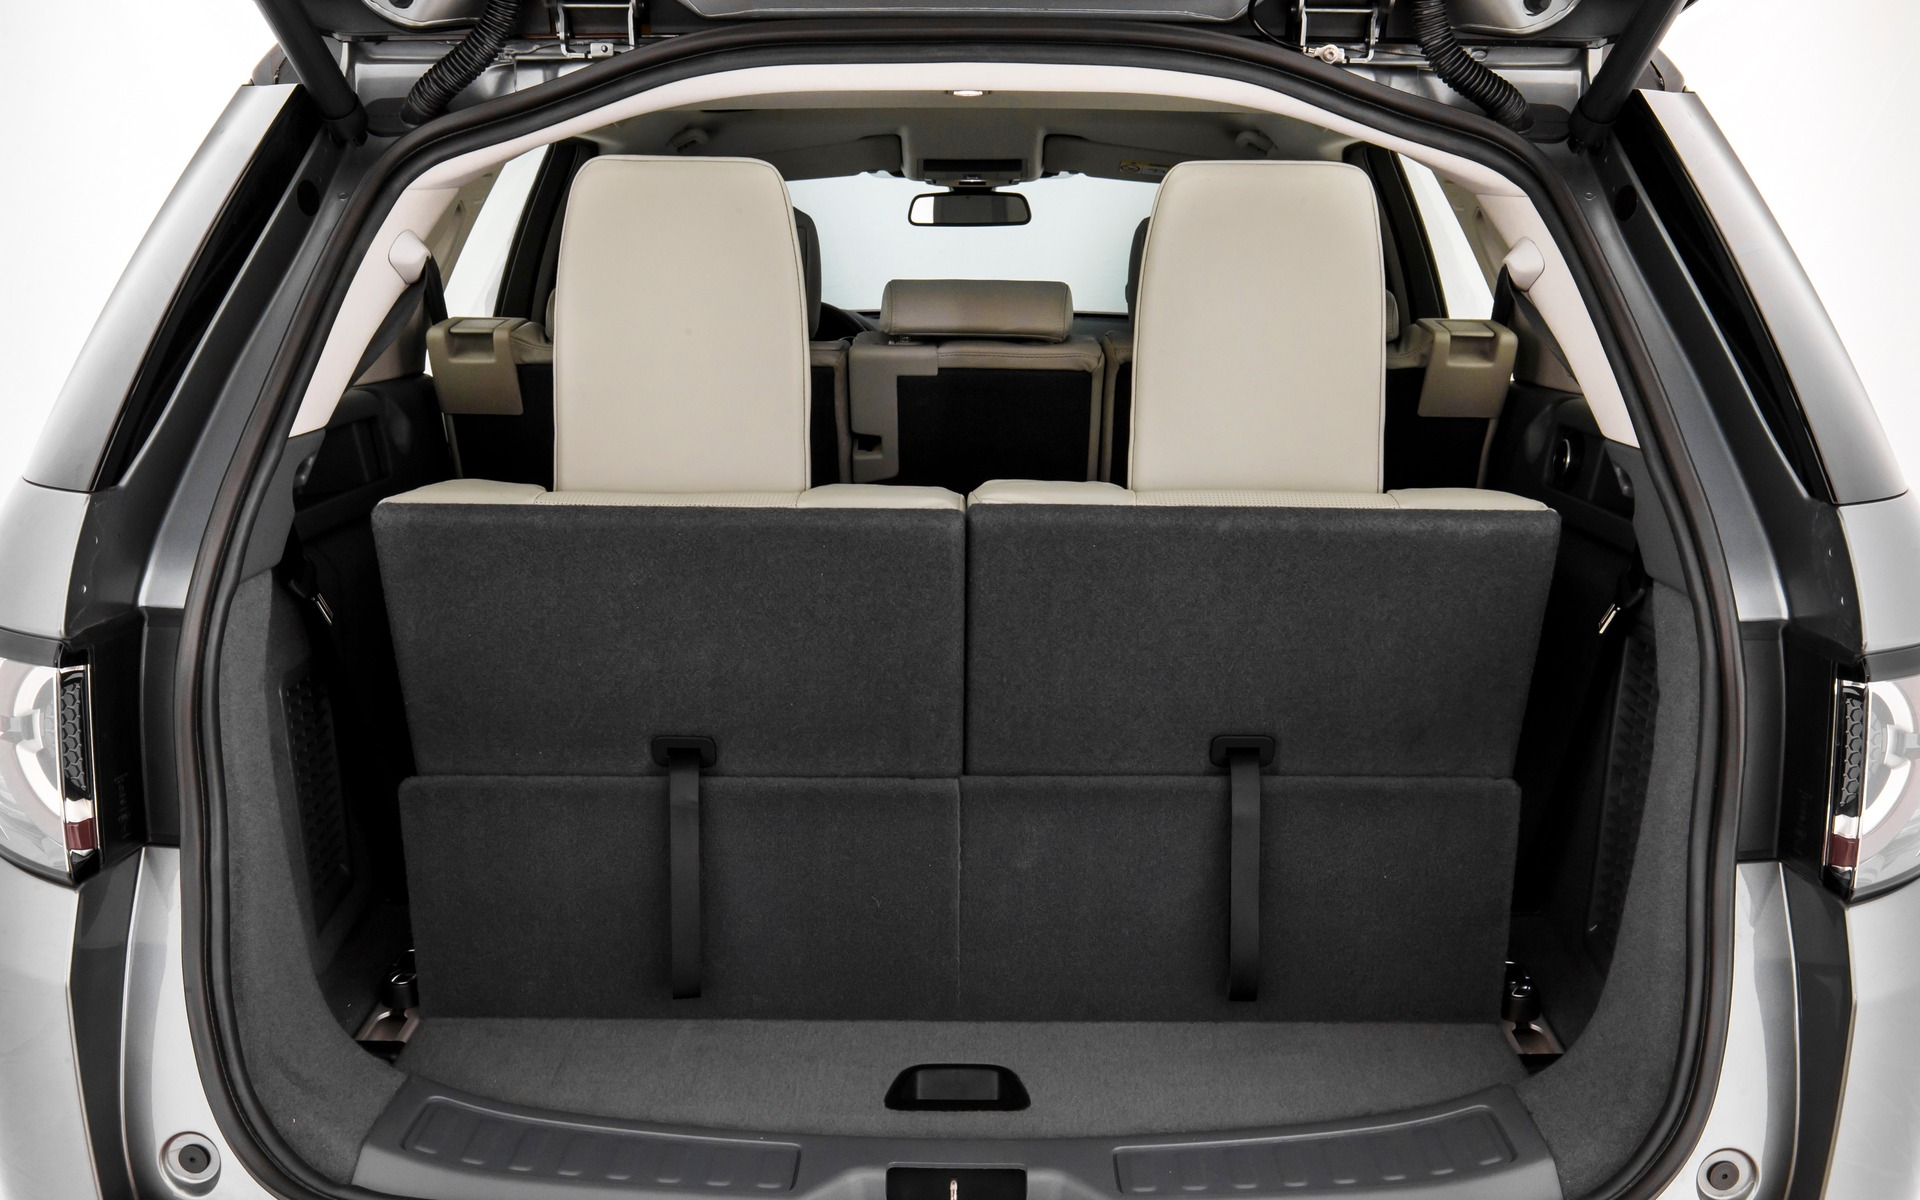 2015 Land Rover Discovery Sport Built For Versatility 23 44